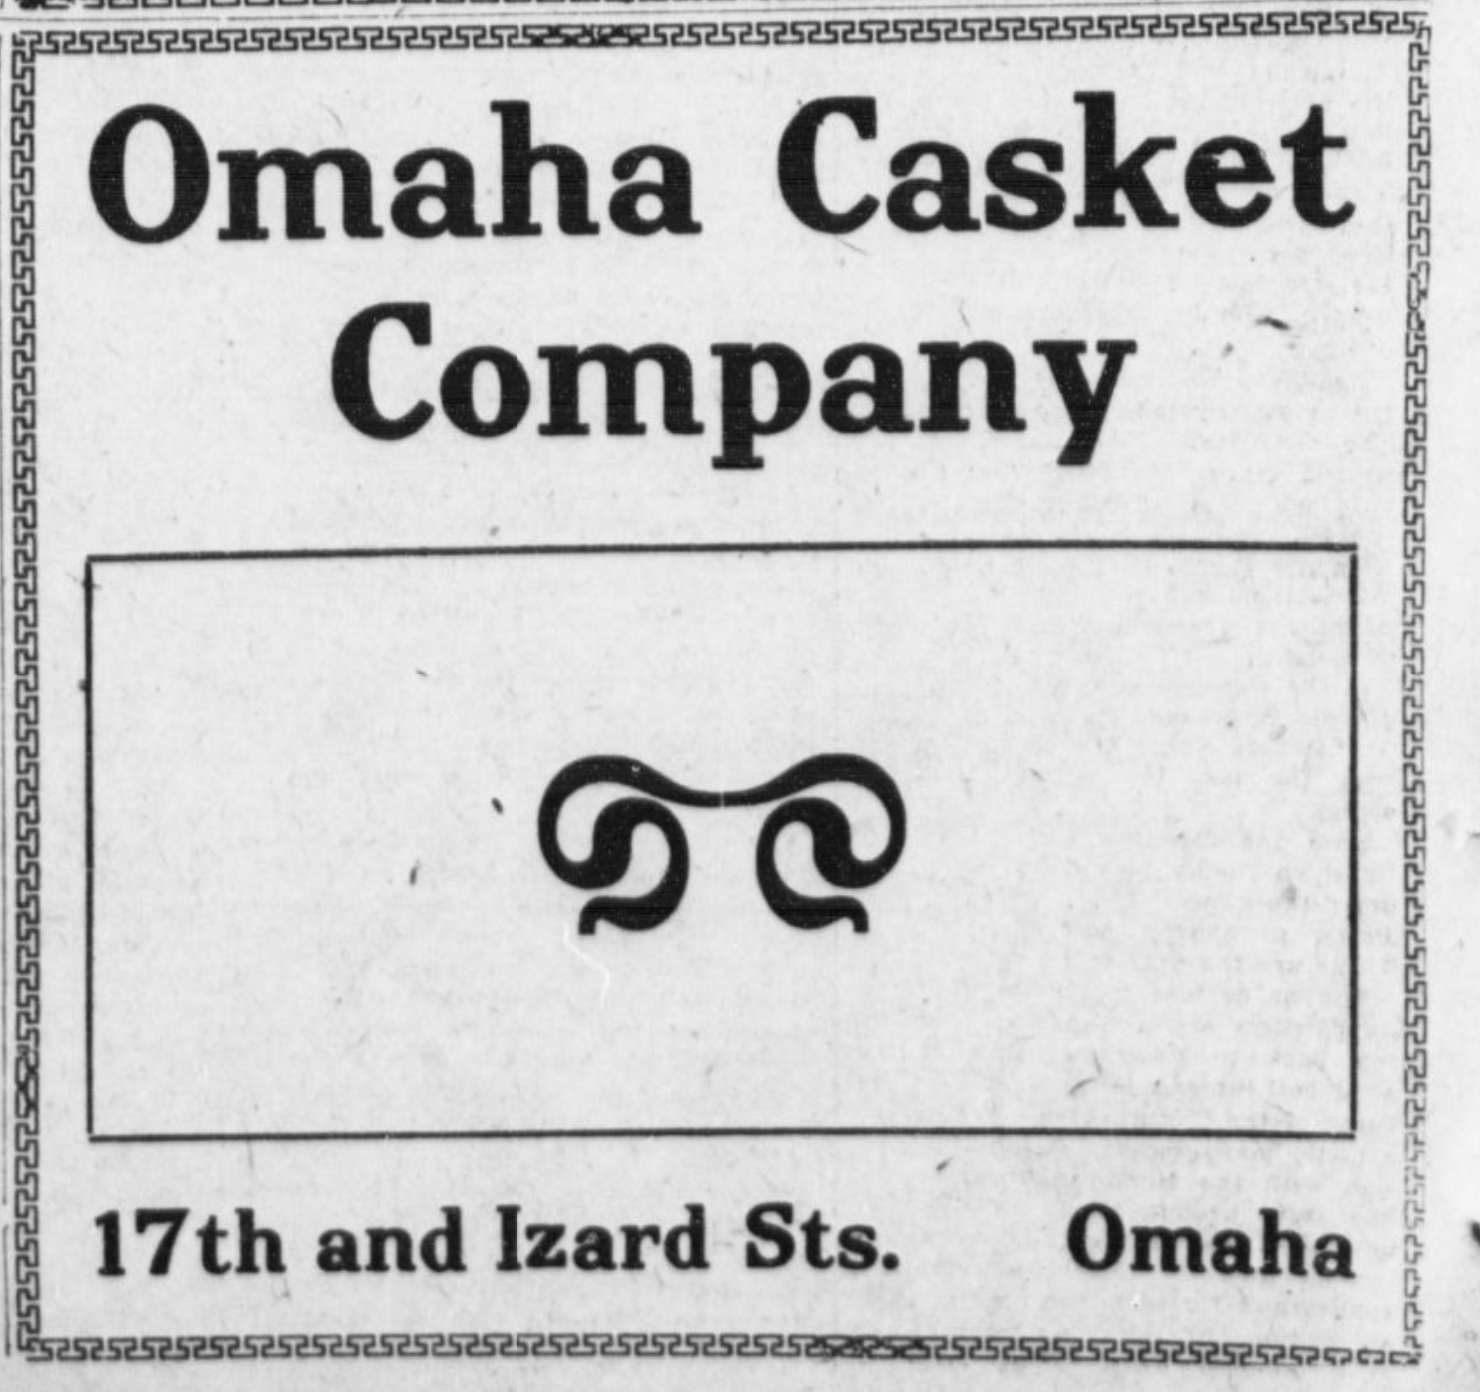 This was a 1901 ad for the Omaha Casket Company.